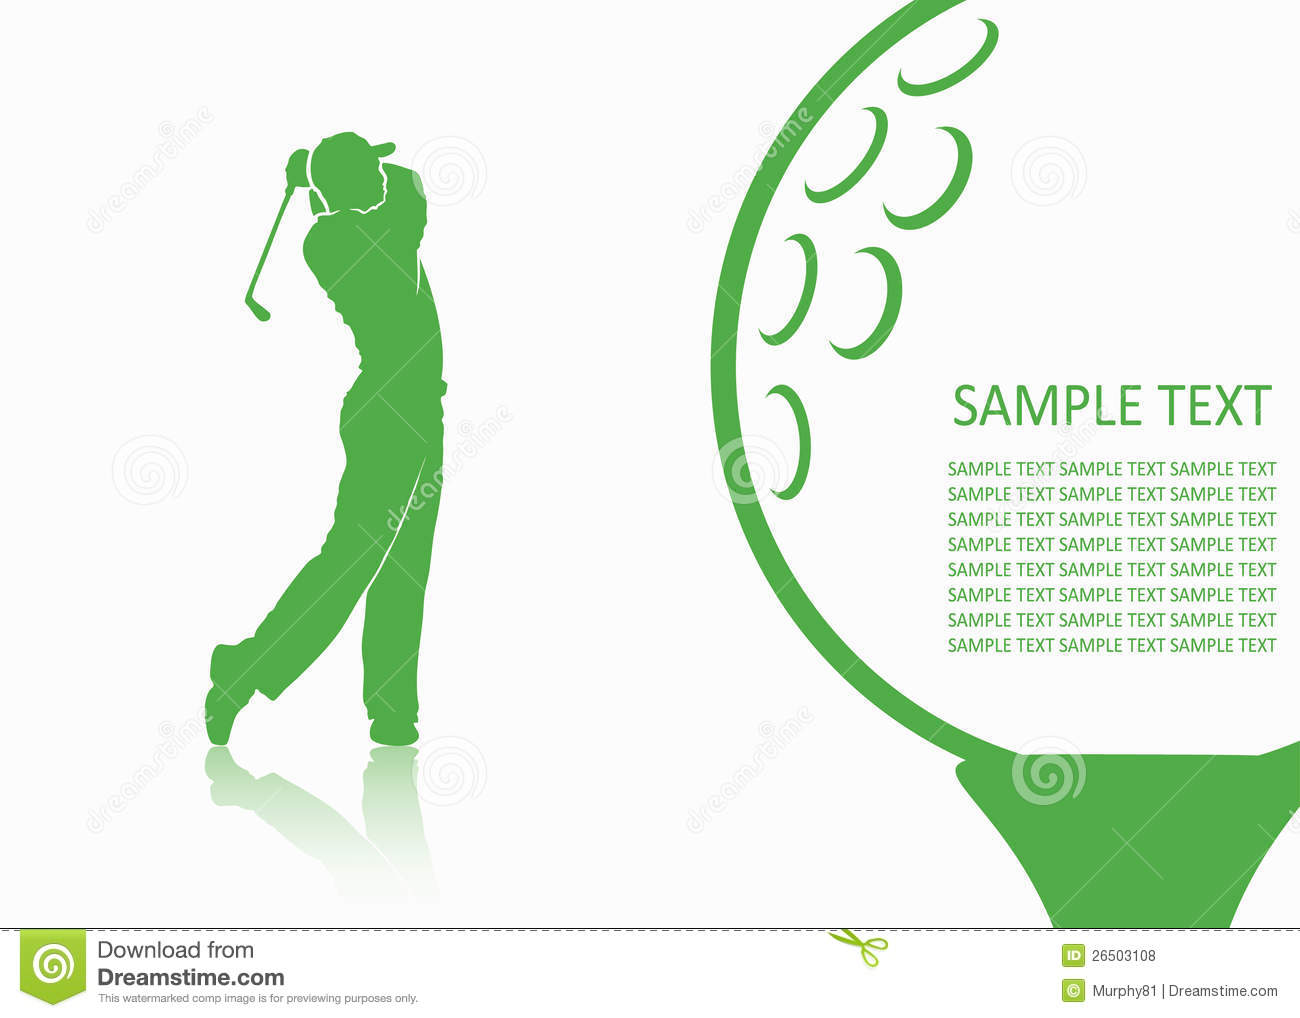 Golf Background Royalty Free Stock Photos - Image: 26503108 Golf Ball On Tee Clipart